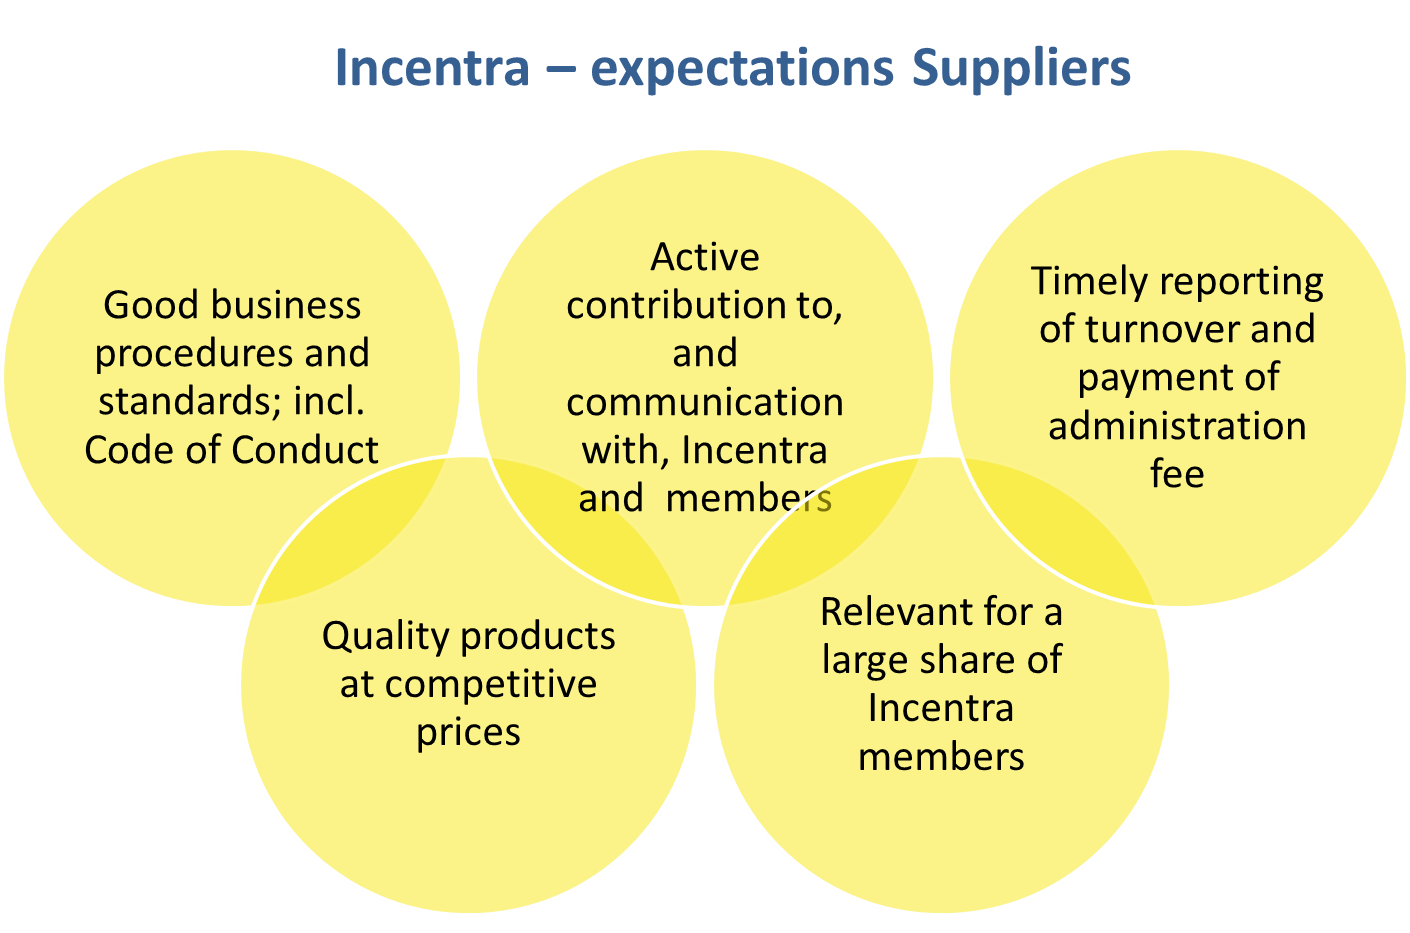 Suppliers Incentra